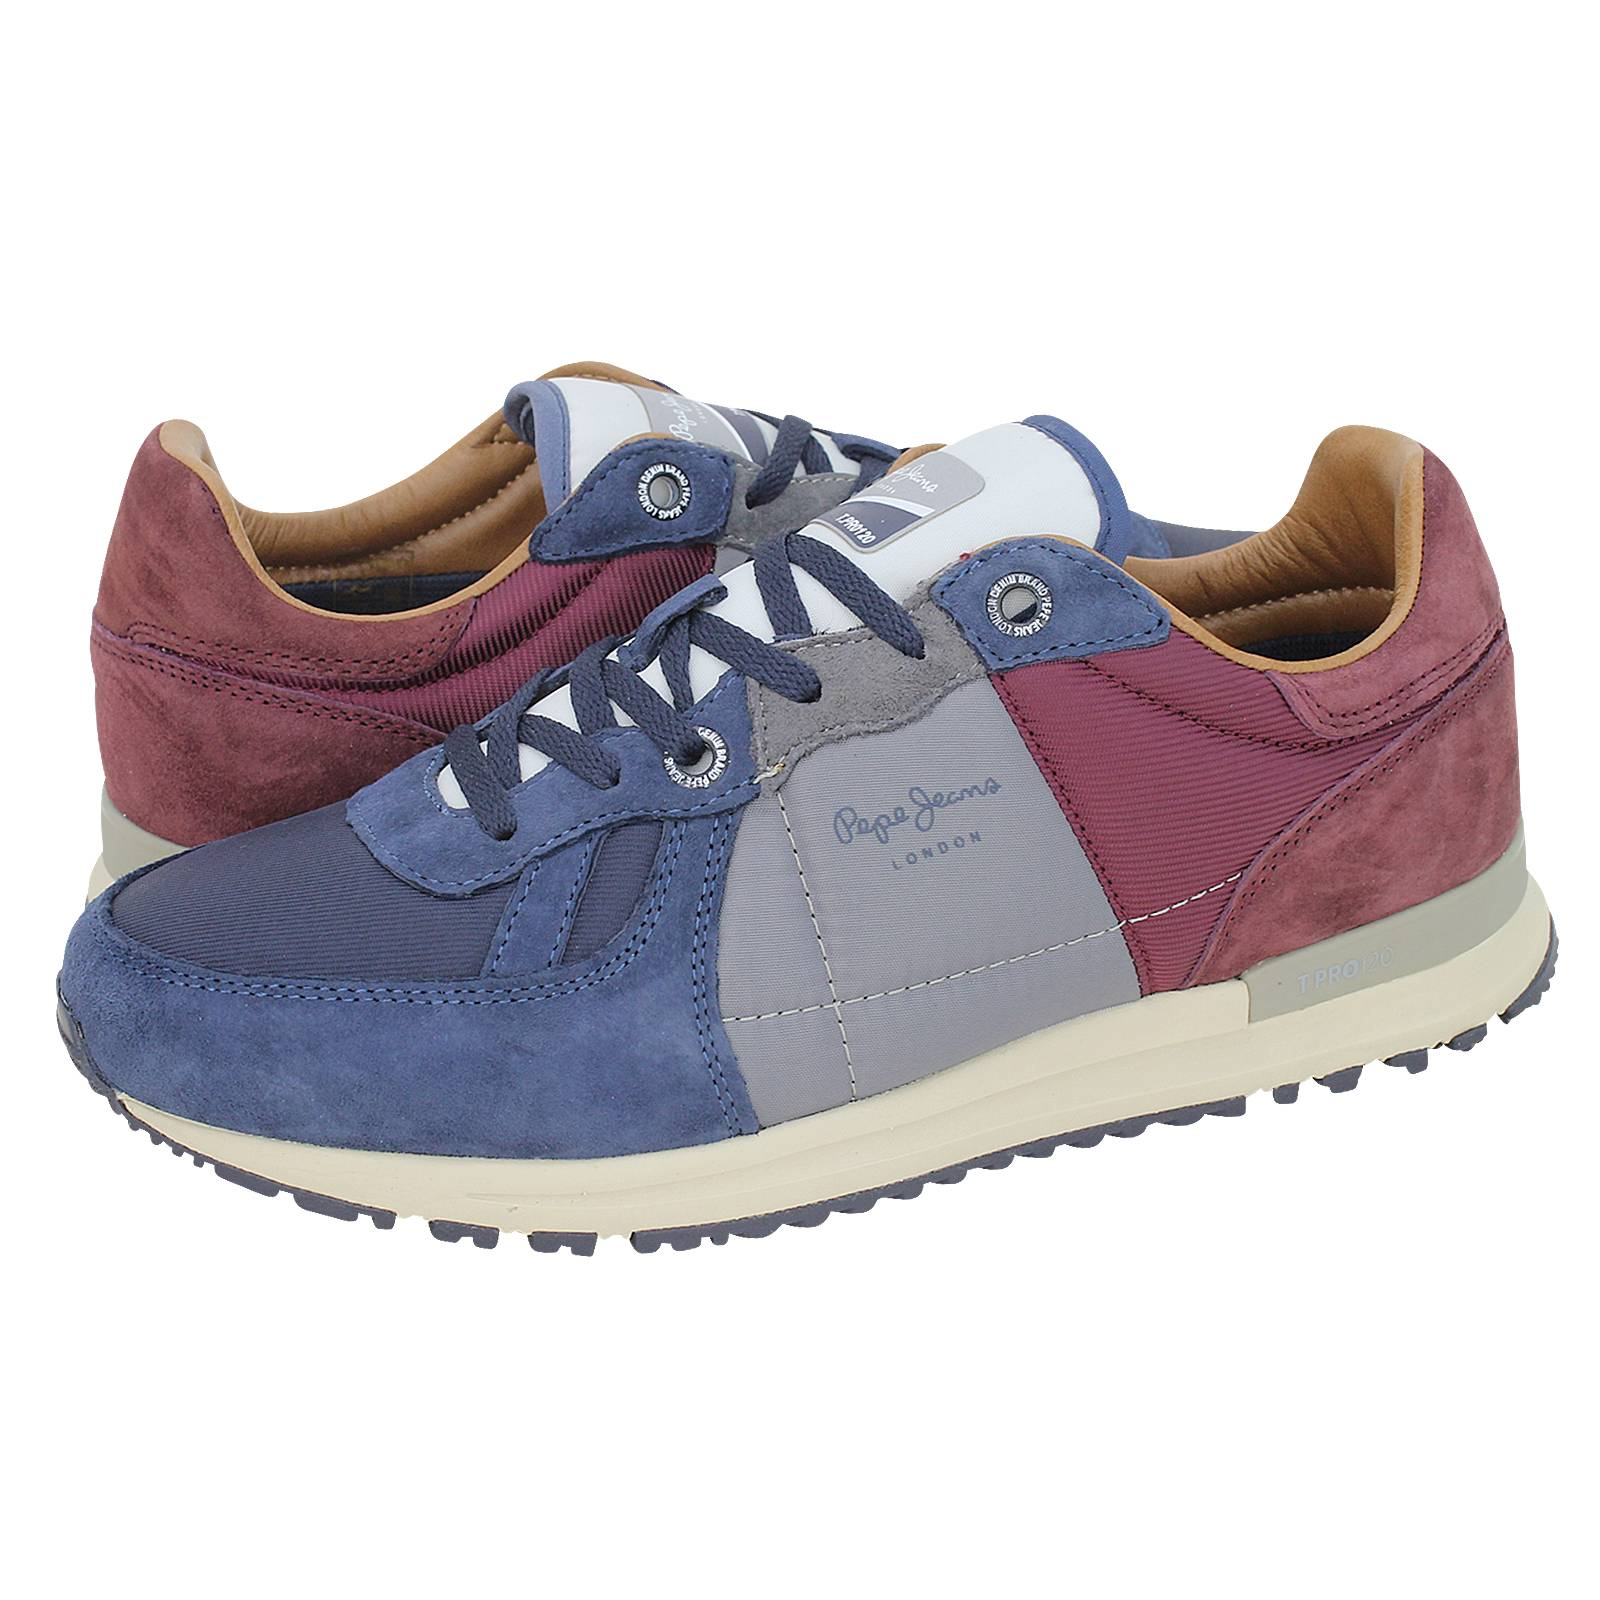 341a7f81cde Tinker Pro Camp - Pepe Jeans Men s casual shoes made of suede and ...